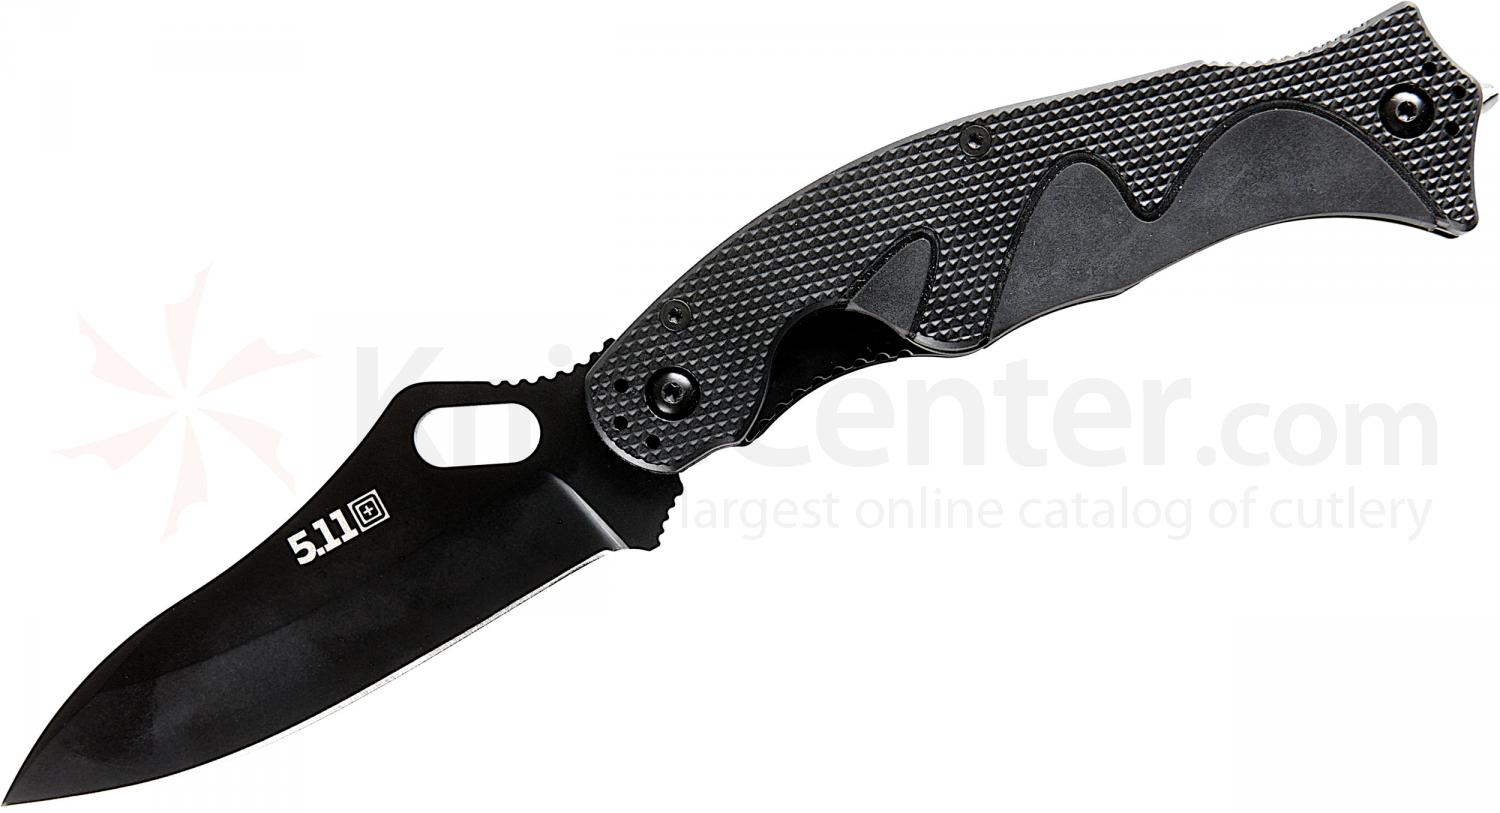 5.11 Tactical Double Duty Quick Fix Folding Knife 3.75 inch Blade, Black FRN Handles (51090)